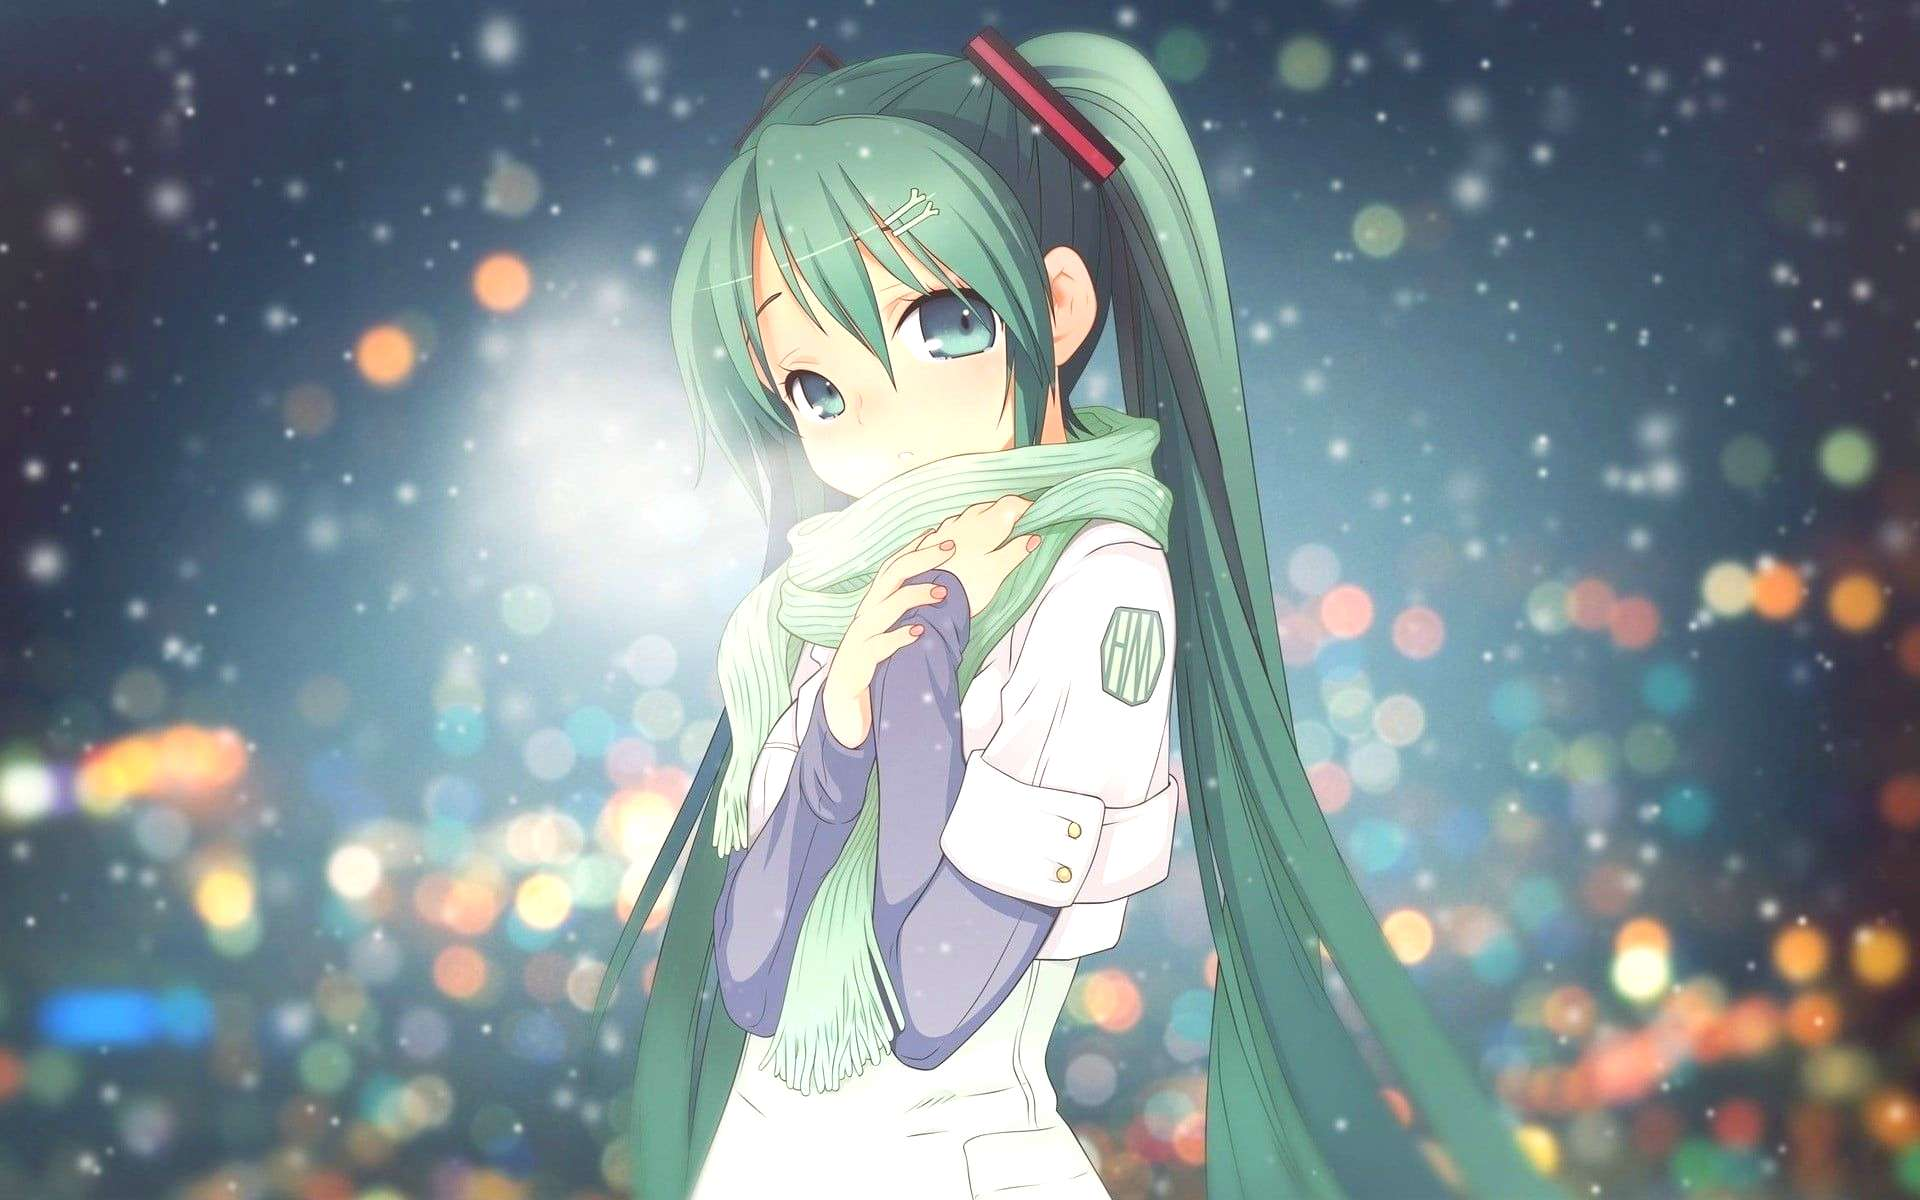 green haired female anime character digital wallpaper anime girls haired female anime character dig